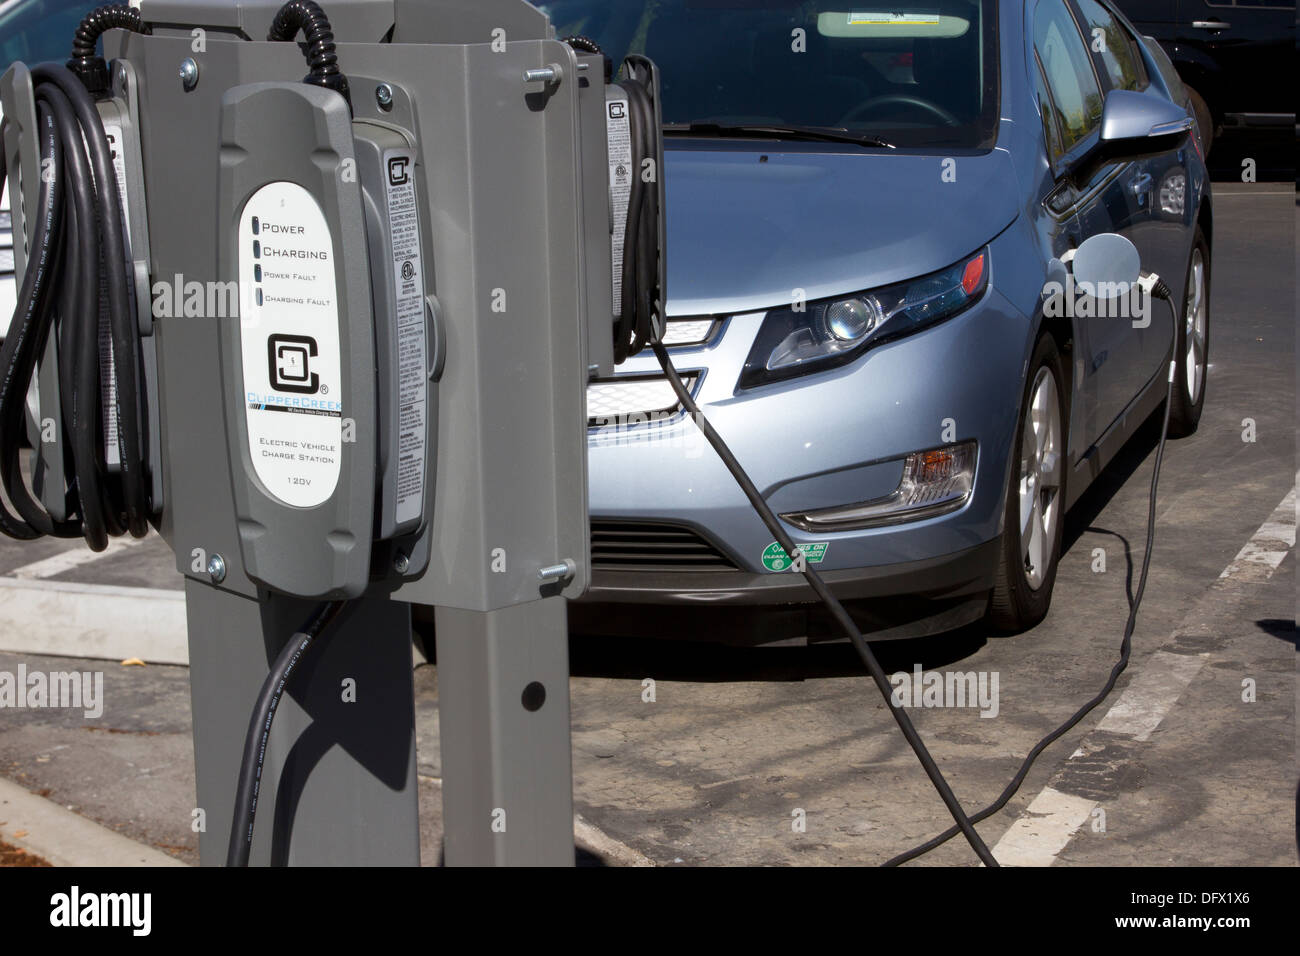 EV charging stations with plug-in electric car plugged to charge its battery in a workplace parking lot - Stock Image